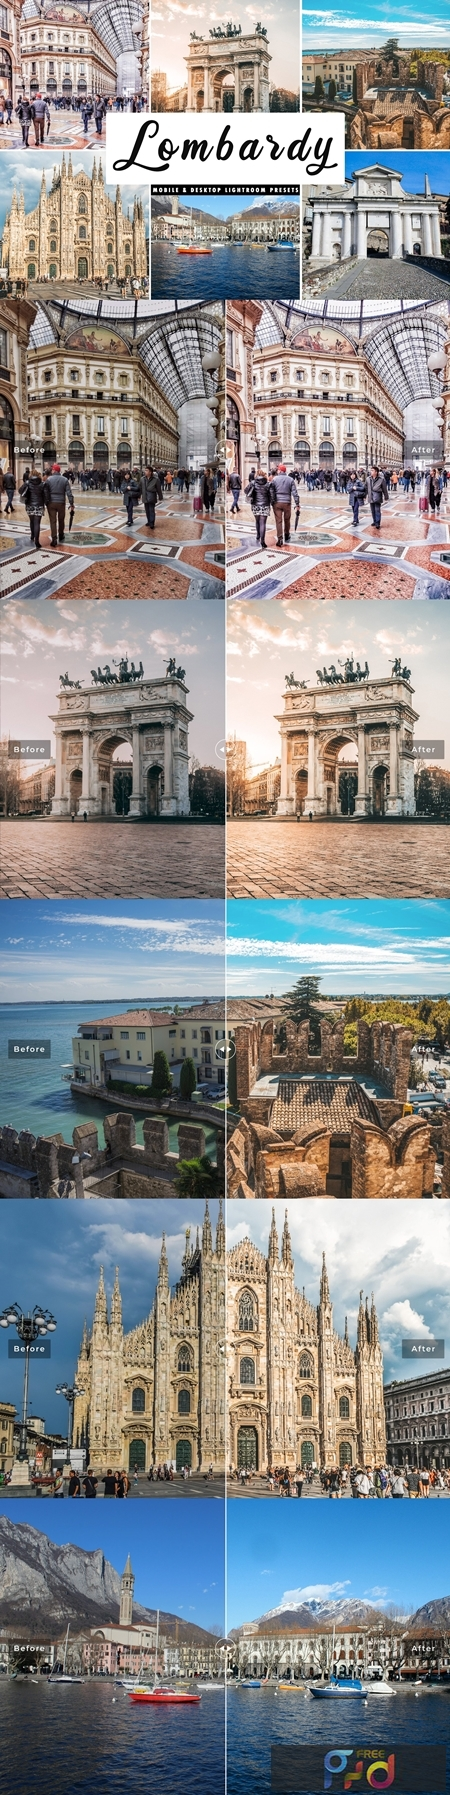 Lombardy Lightroom Presets Pack 4508559 1